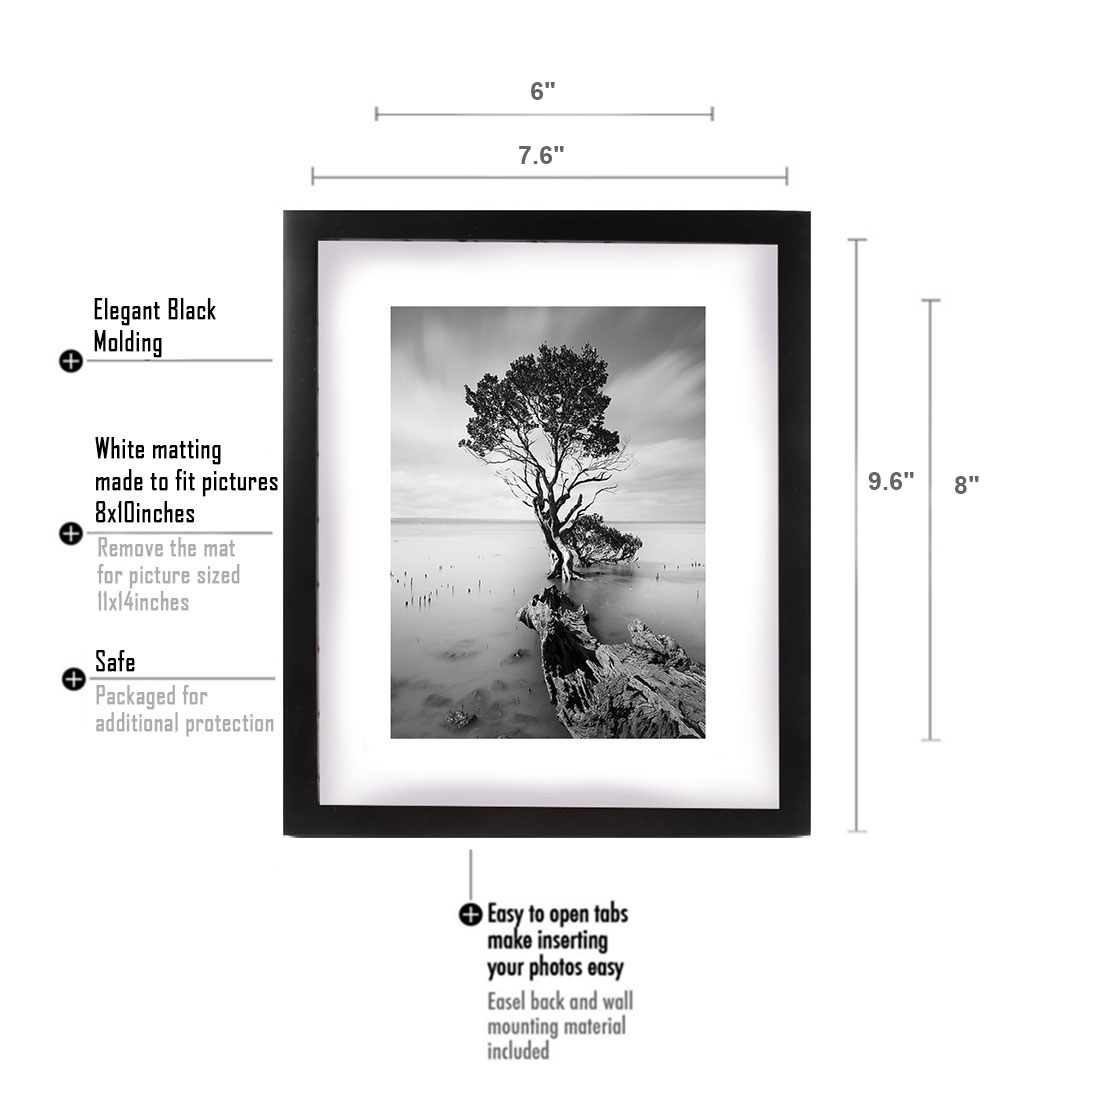 Wooden photo frame picture display modern wall mounted art home four frame size choices 5 x 7 inches 62 x 83 inches 7 x 9 inches 9 x 112 inches 12 x 15 inches jeuxipadfo Images